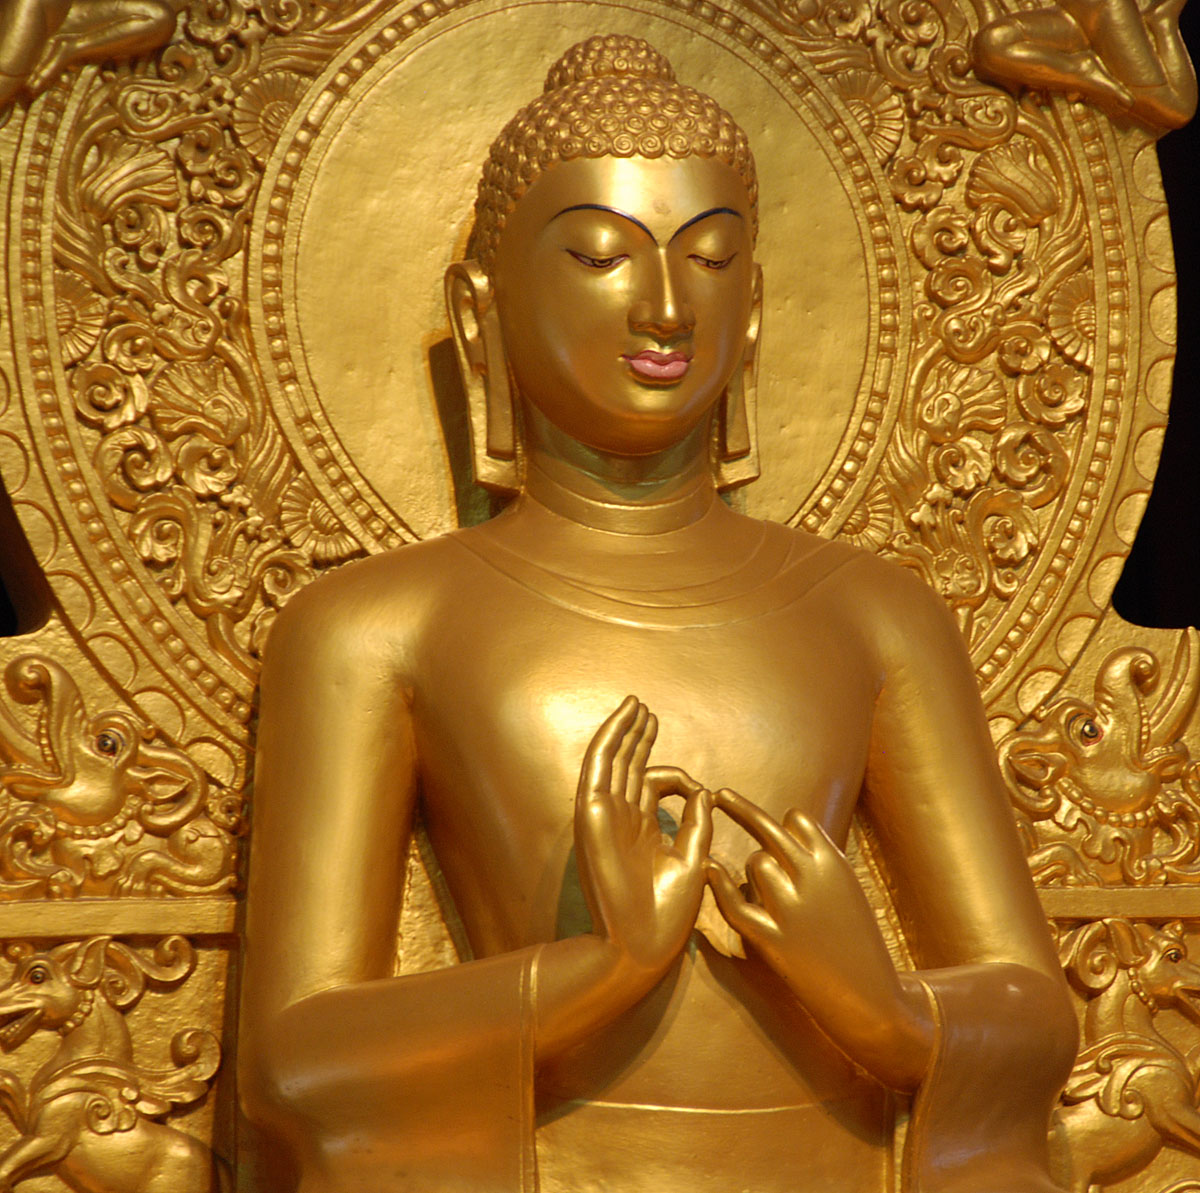 A statue of Buddha in Sarnath